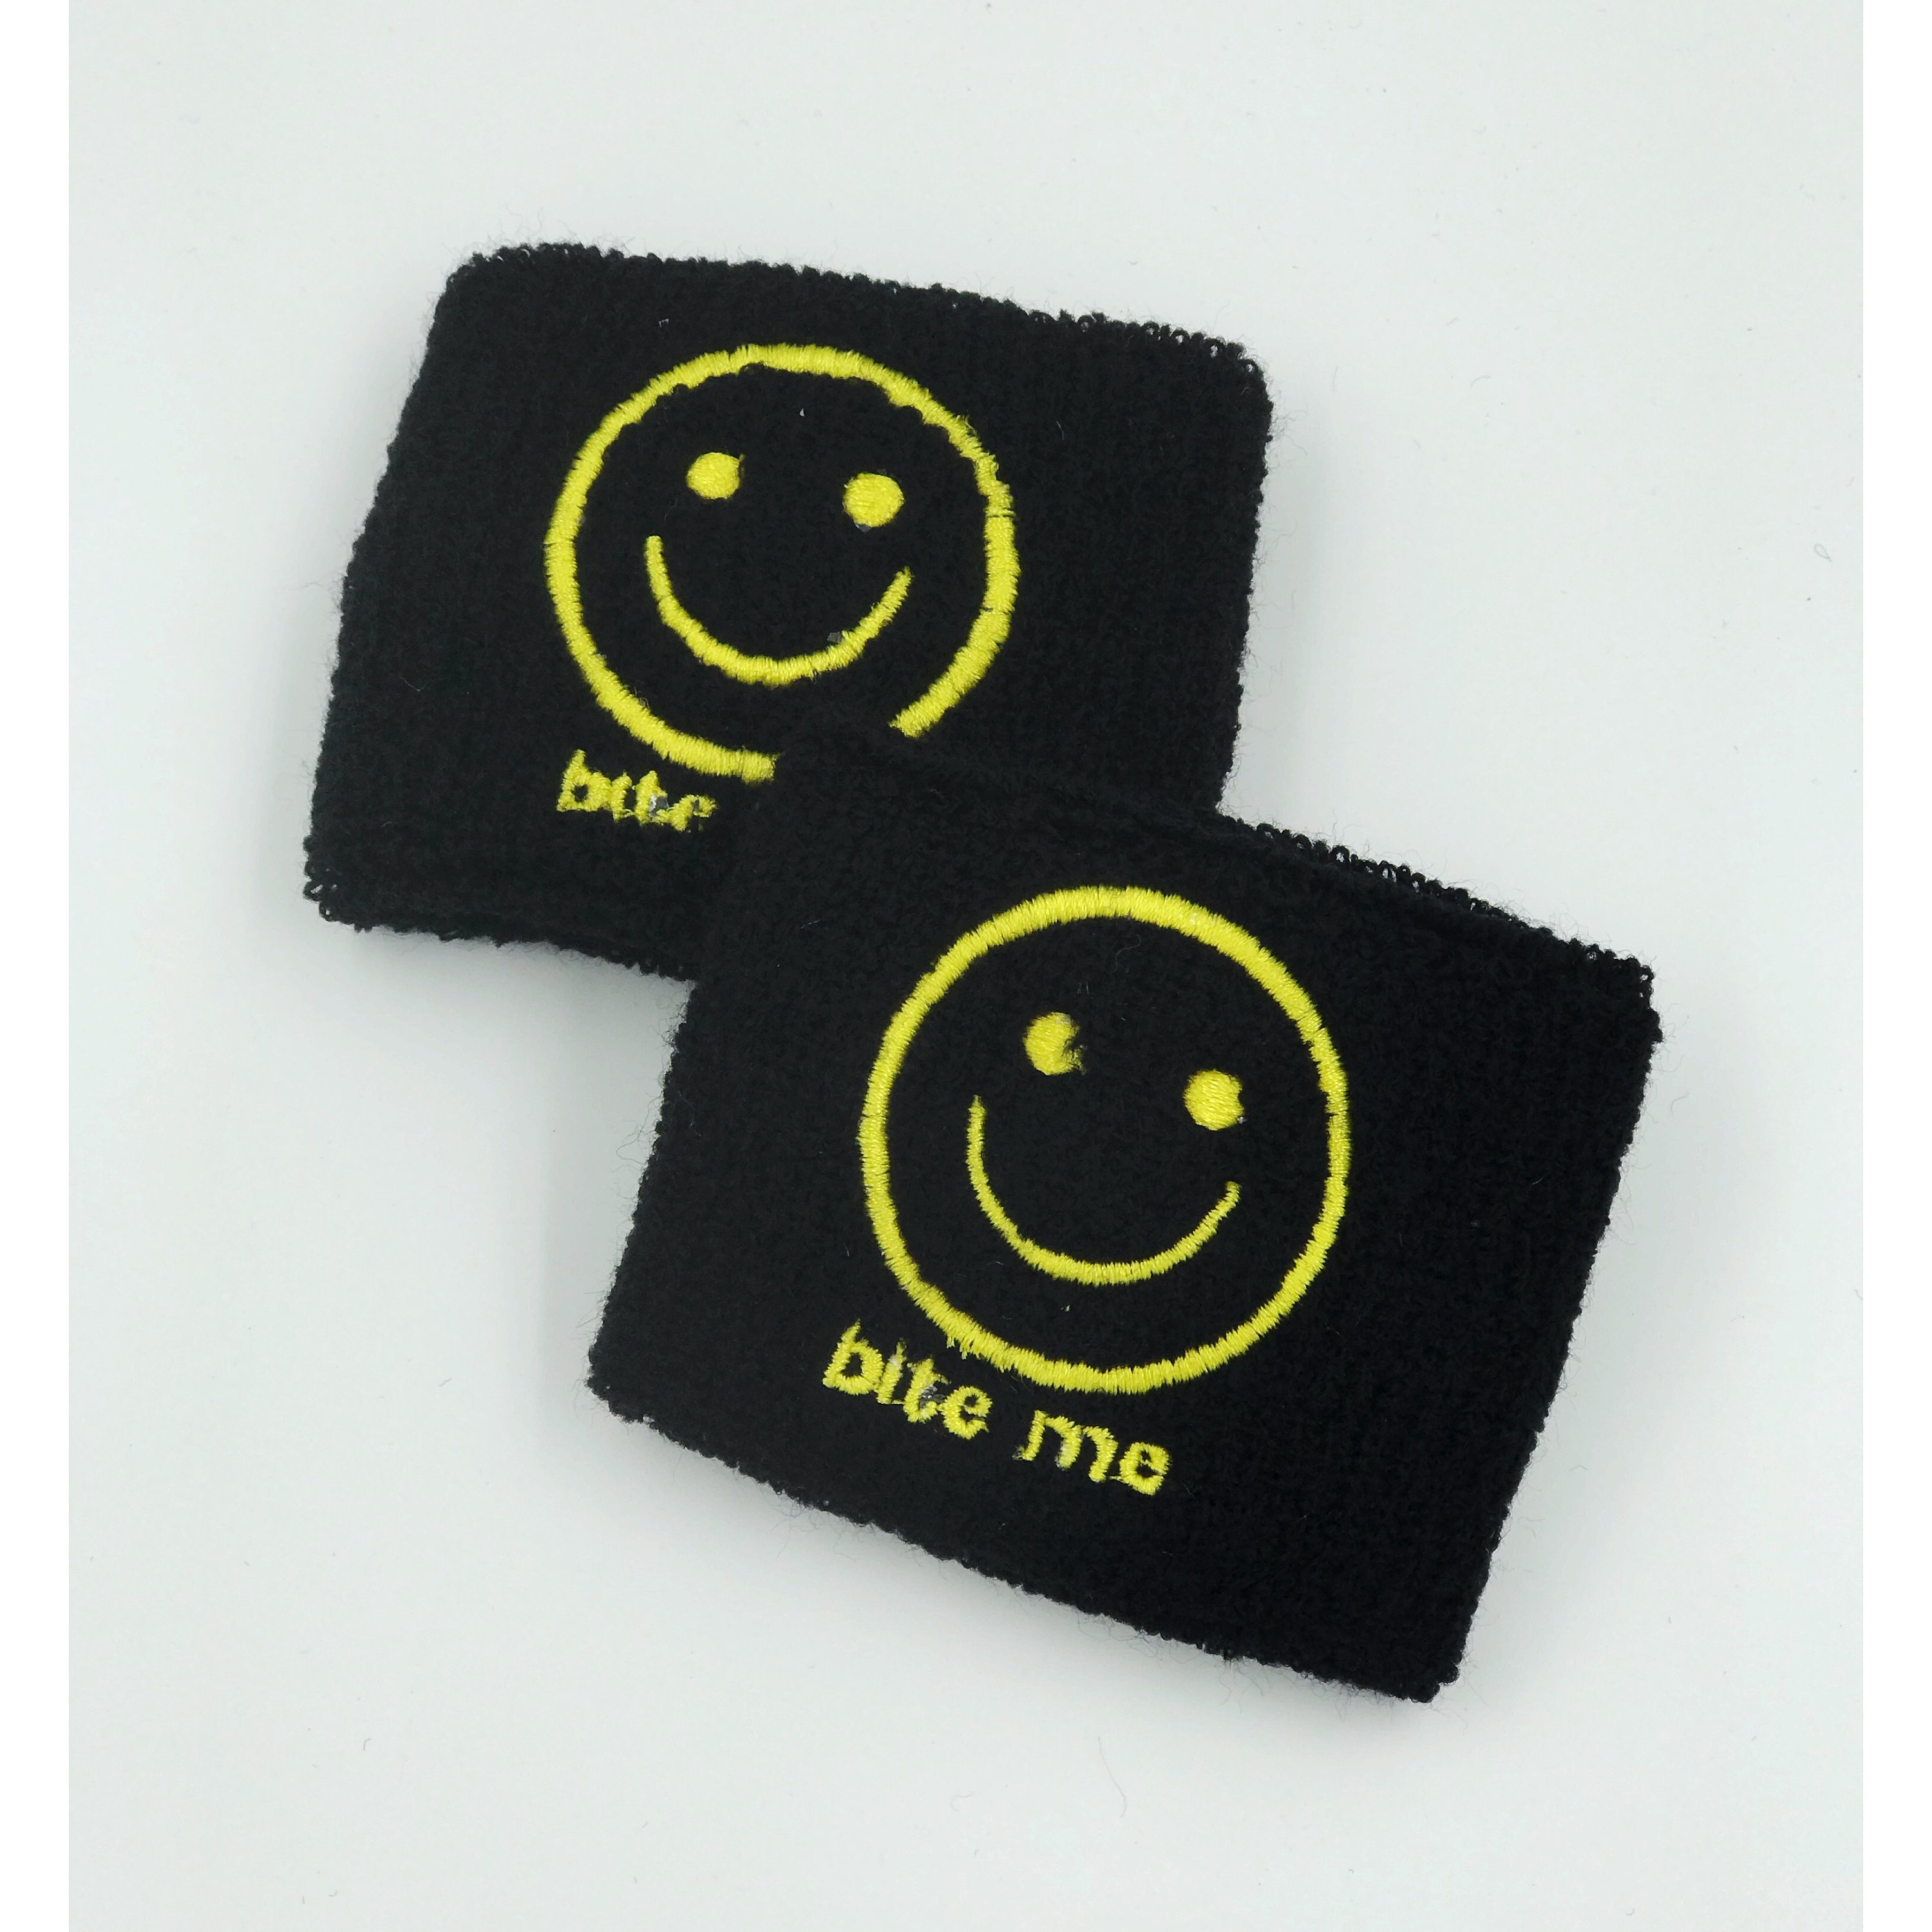 BITE ME Happy Face Wrist Sweatbands 2 Pack - Sporty Black Yellow ... c823cf31e1f